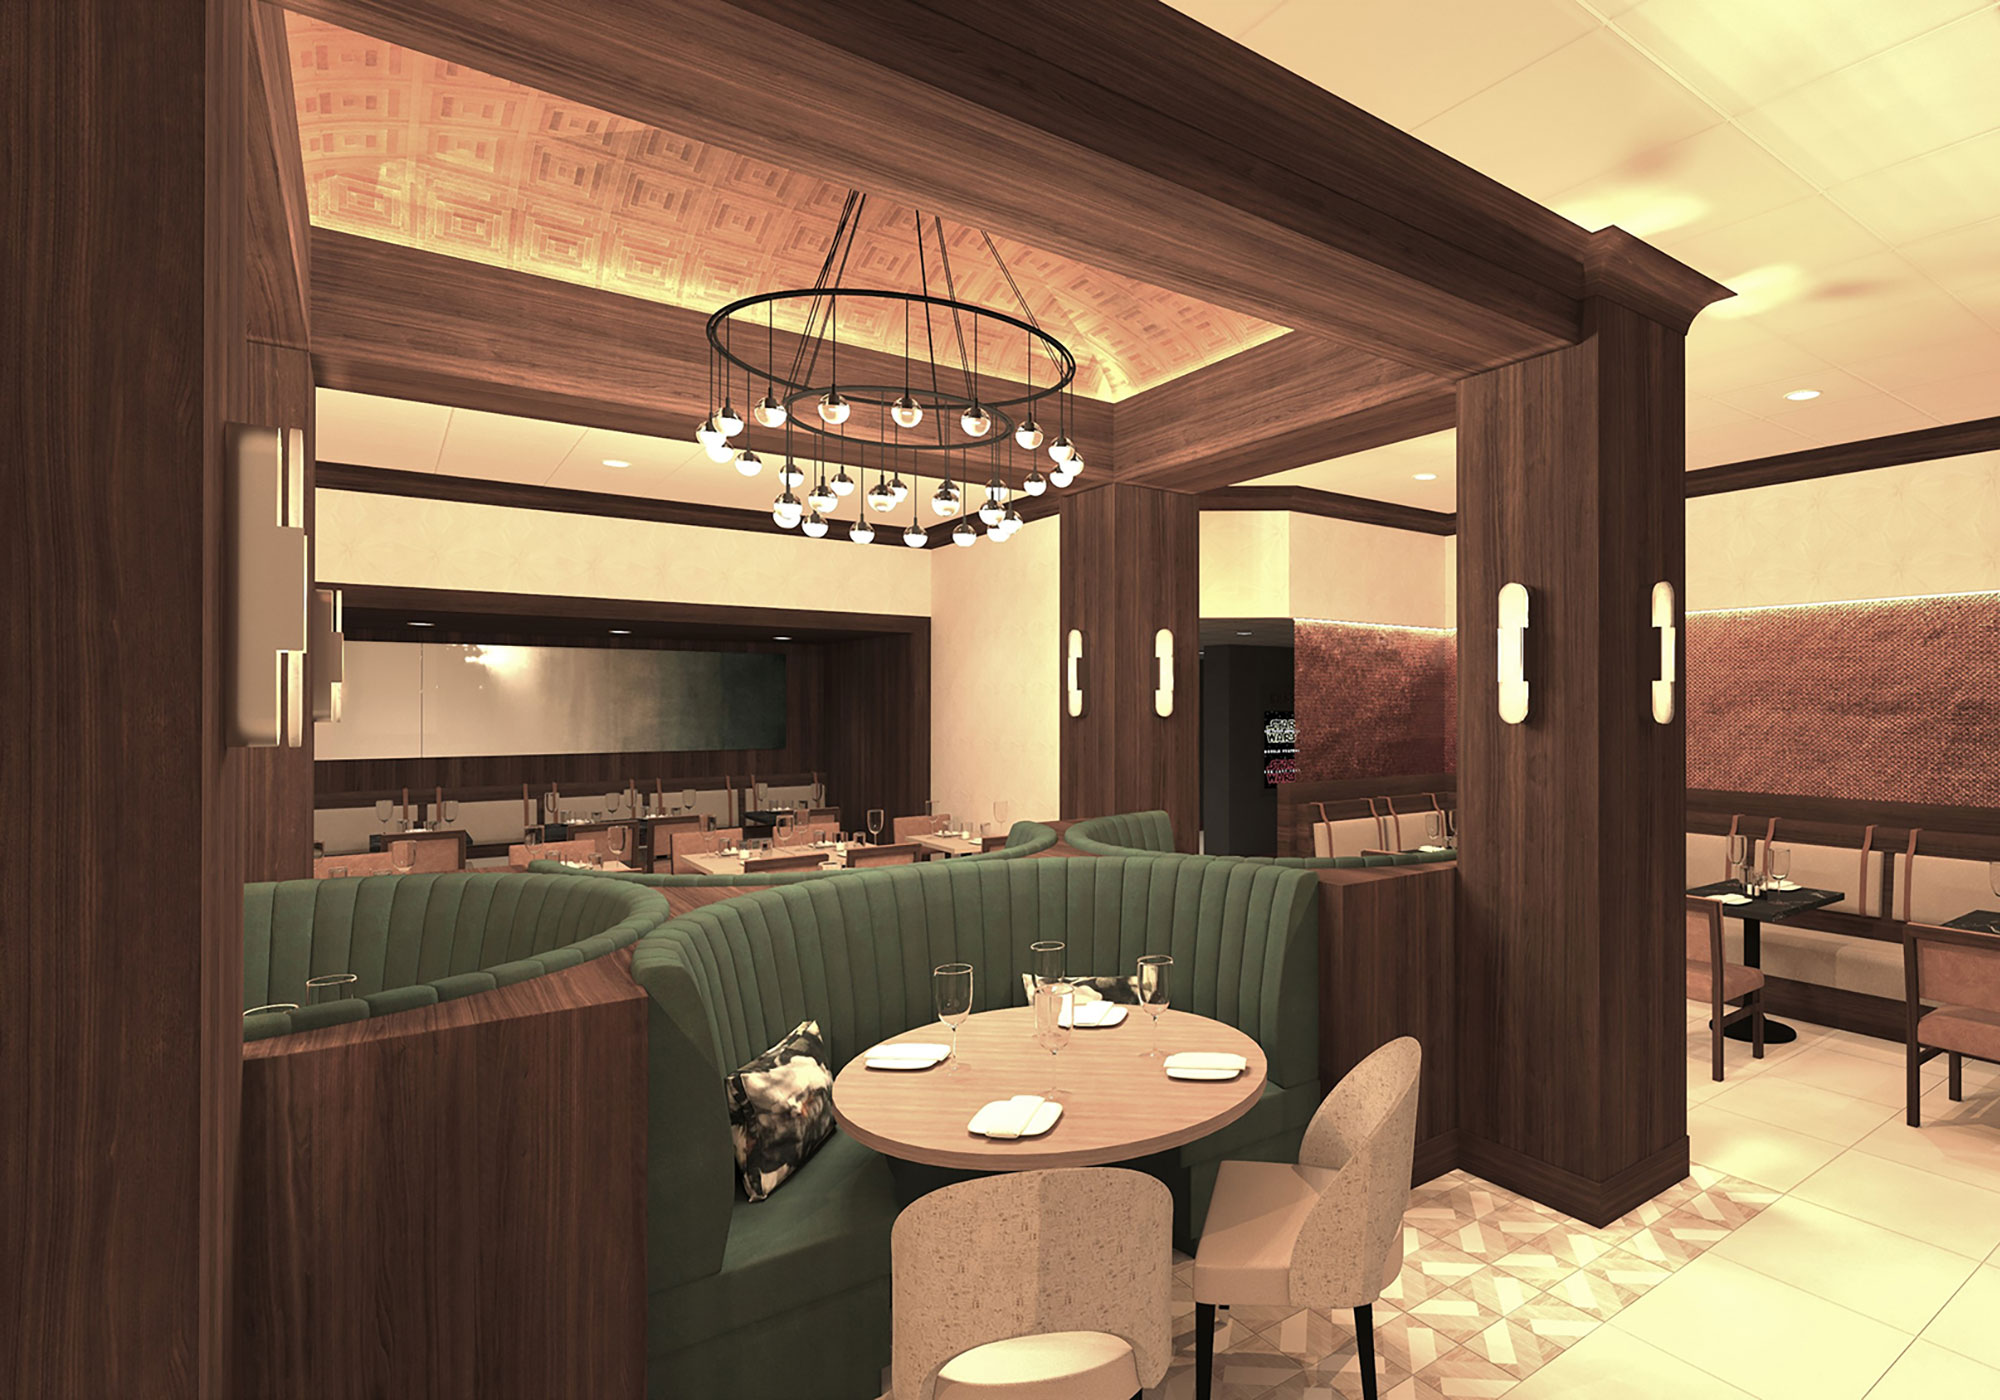 Dining booth rendering